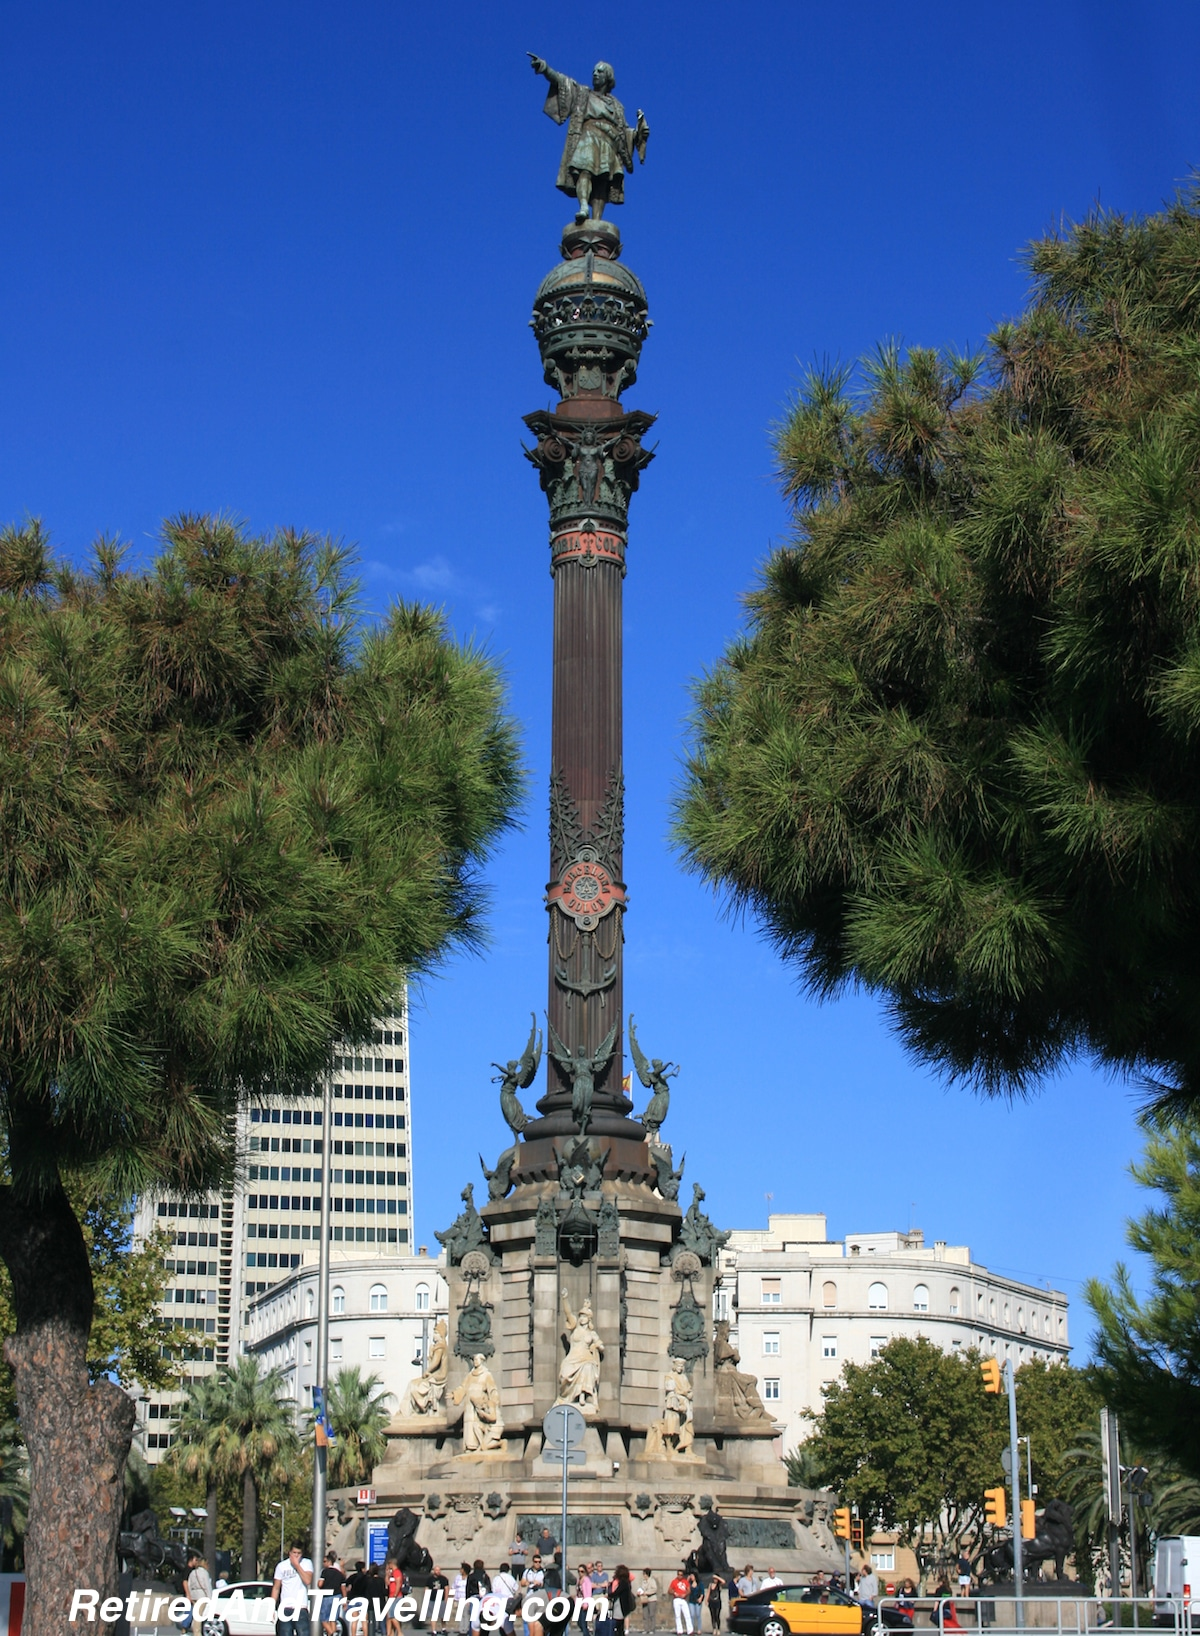 Columbus Statue - Waterfront - Exploring Barcelona.jpg